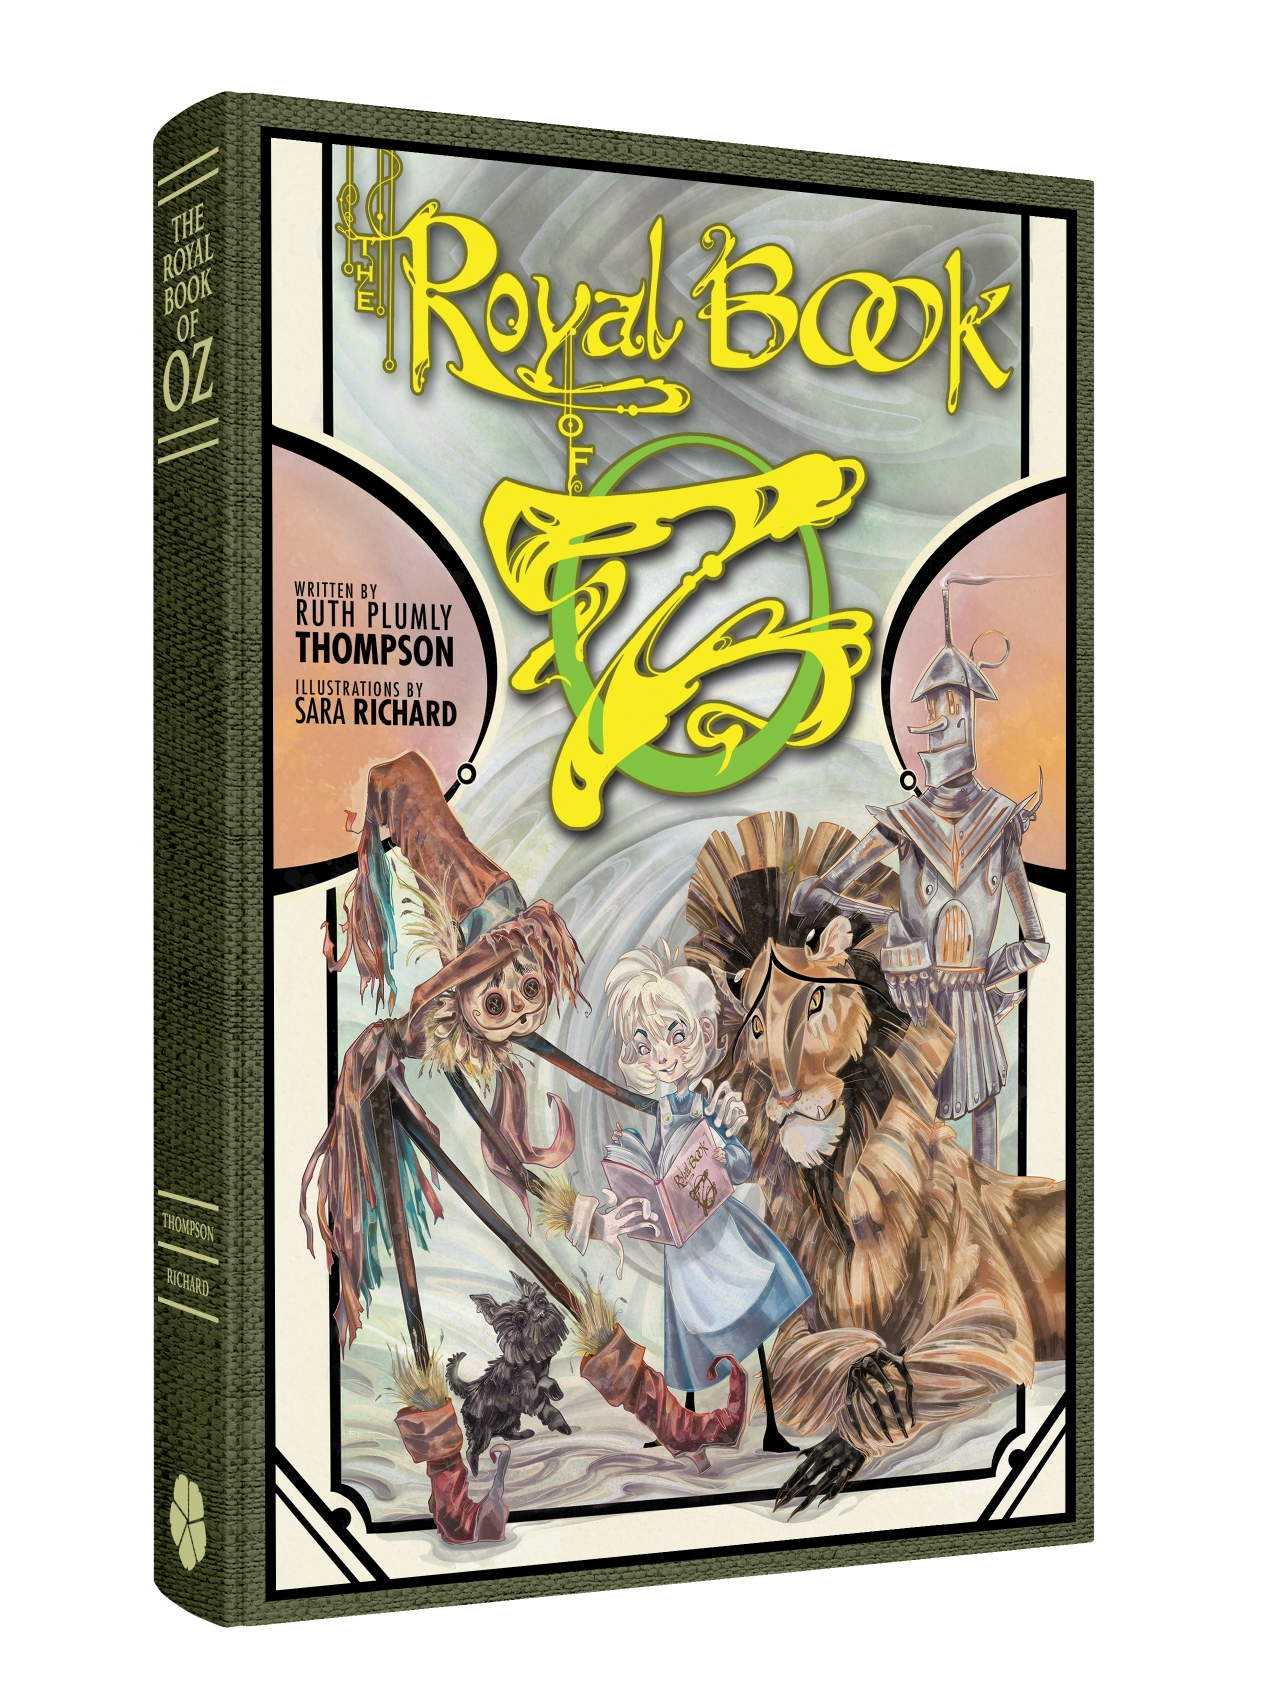 The Royal Book Of Oz by Clover Press (2019)